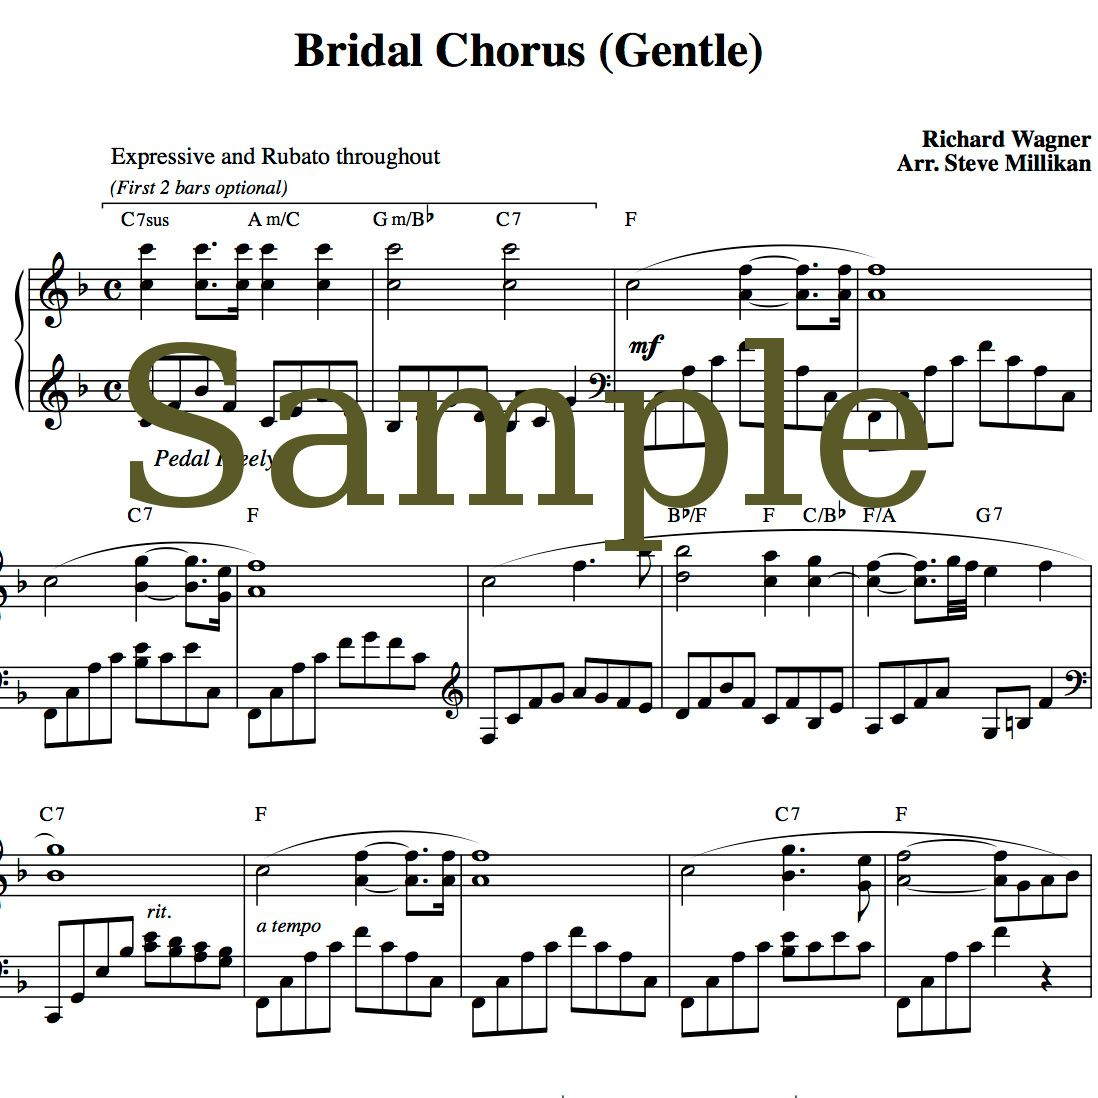 Piano Songs To Walk Down The Aisle To: Bridal Chorus Sheet Music (Here Comes The Bride, Wedding